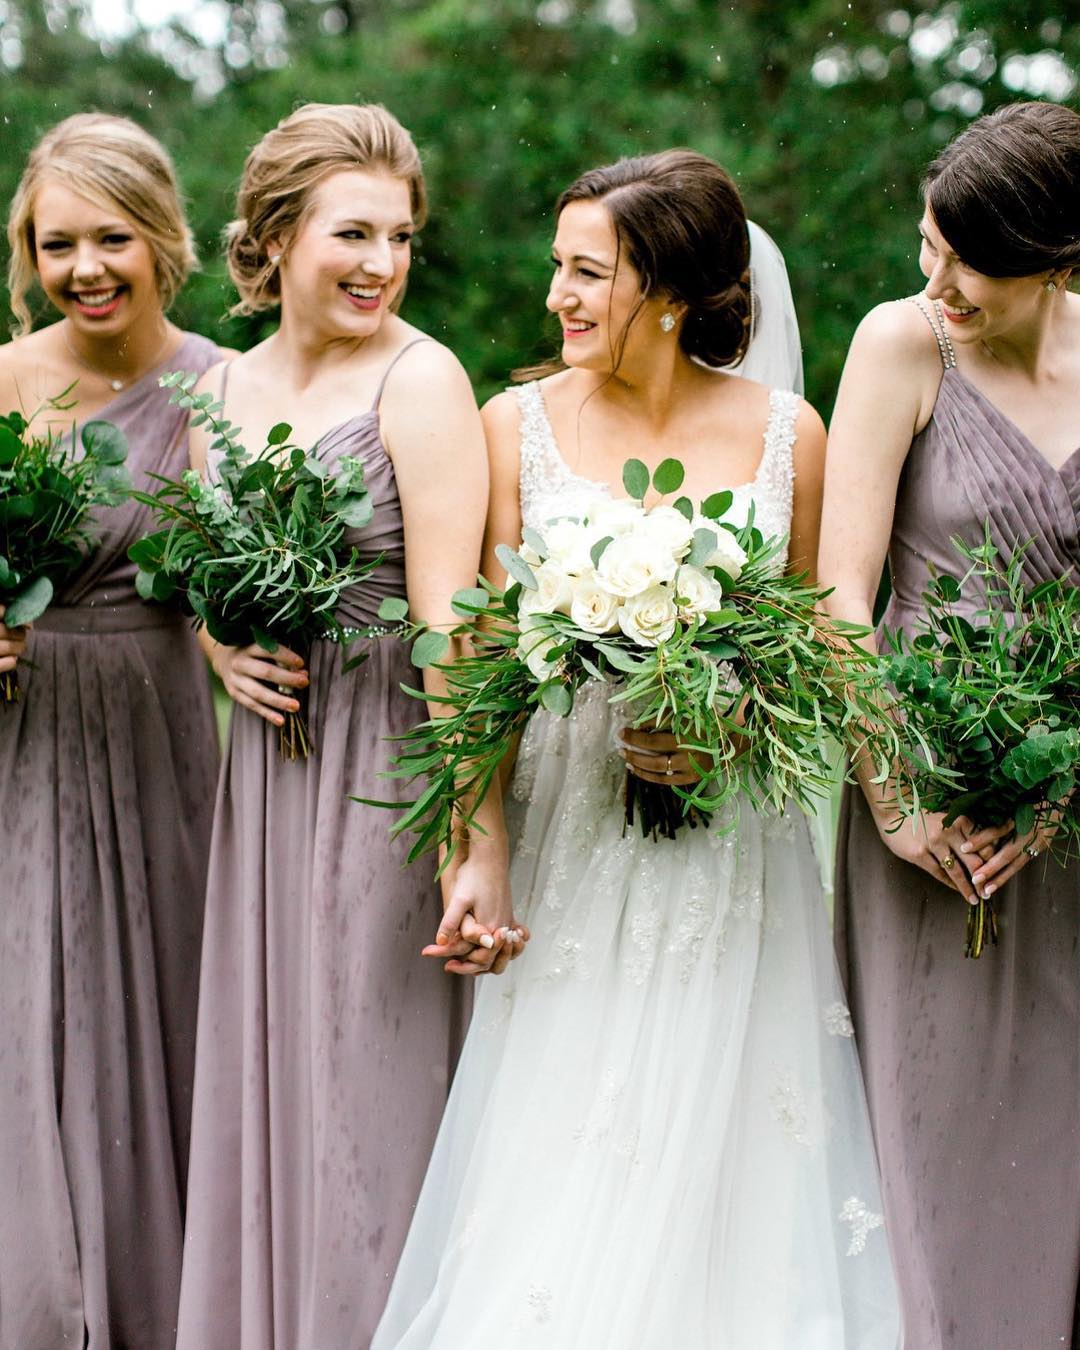 Bridesmaids holding bouquets made of leafy greenery | Nontraditional Wedding Bouquet Ideas